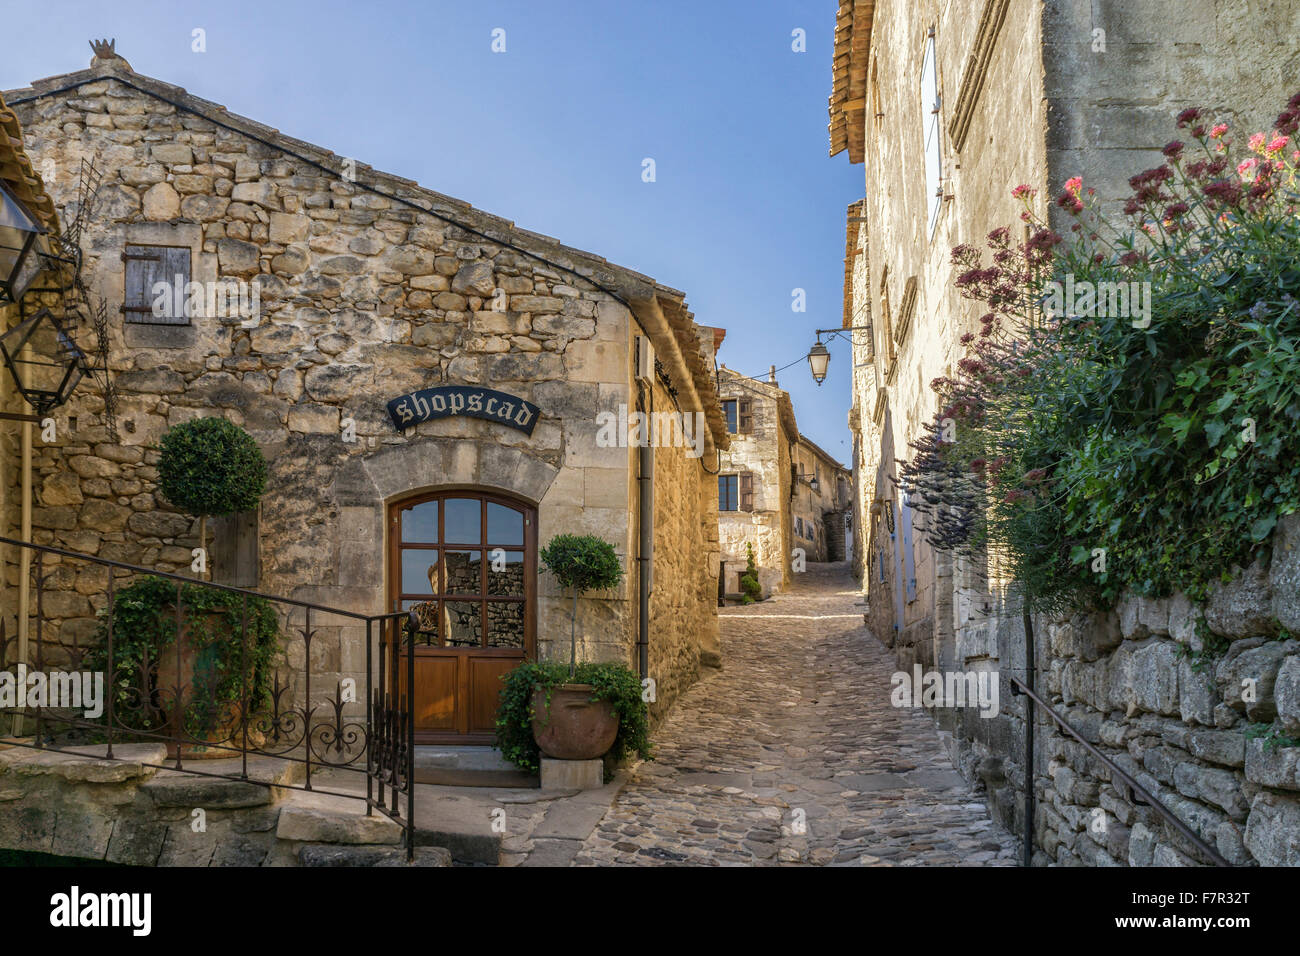 Village street in Lacoste,  Provence, France - Stock Image